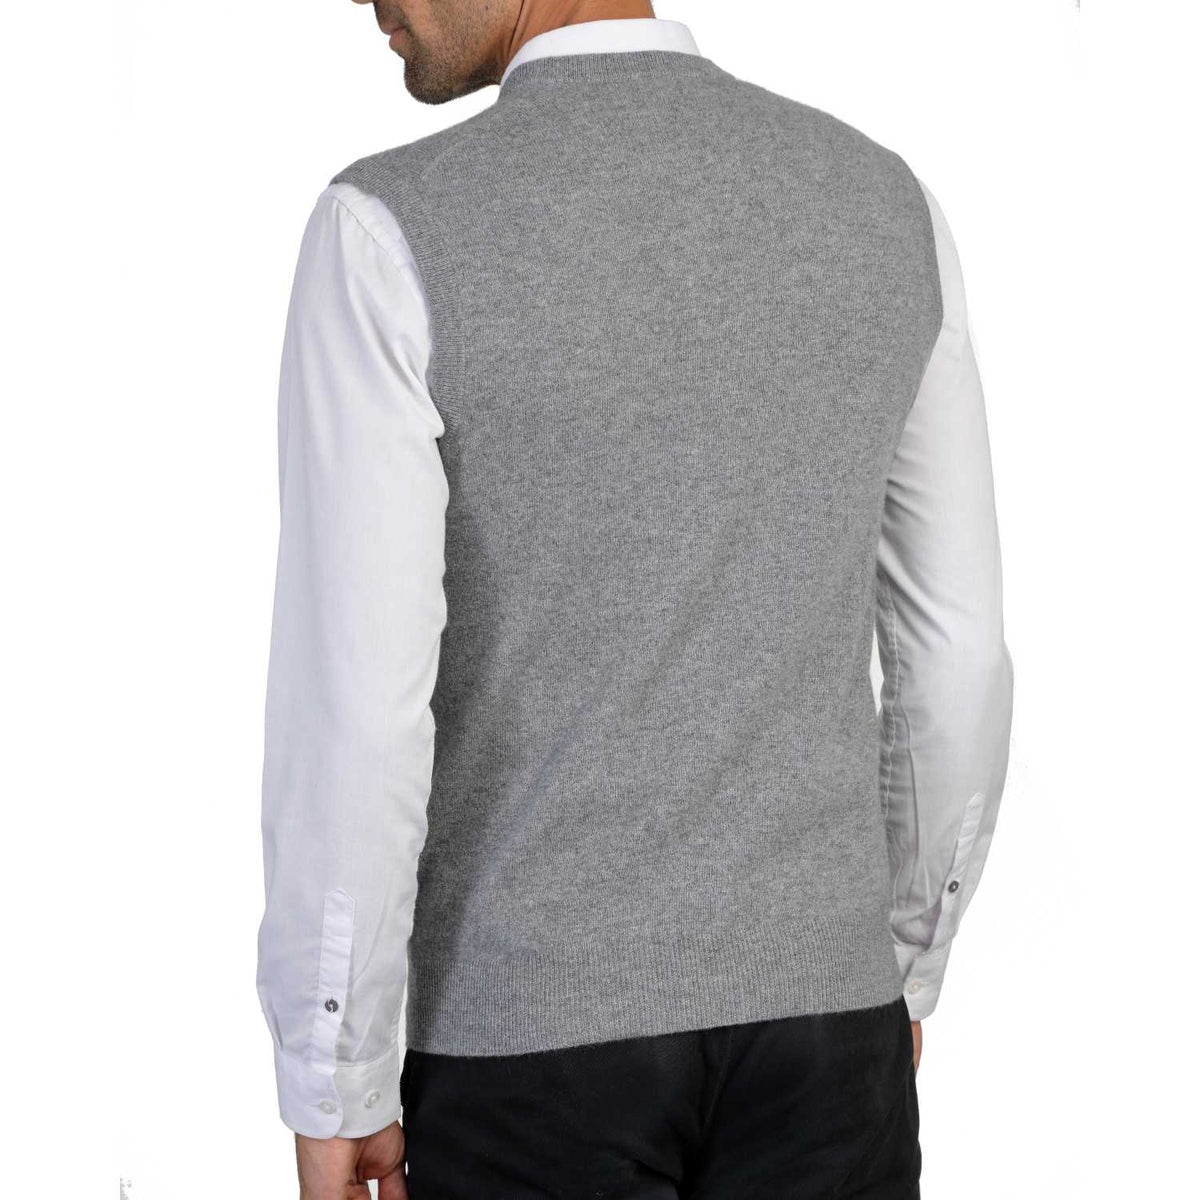 Mens Grey Cashmere Sleeveless Vest Sweater | Back | Shop at The Cashmere Choice | London